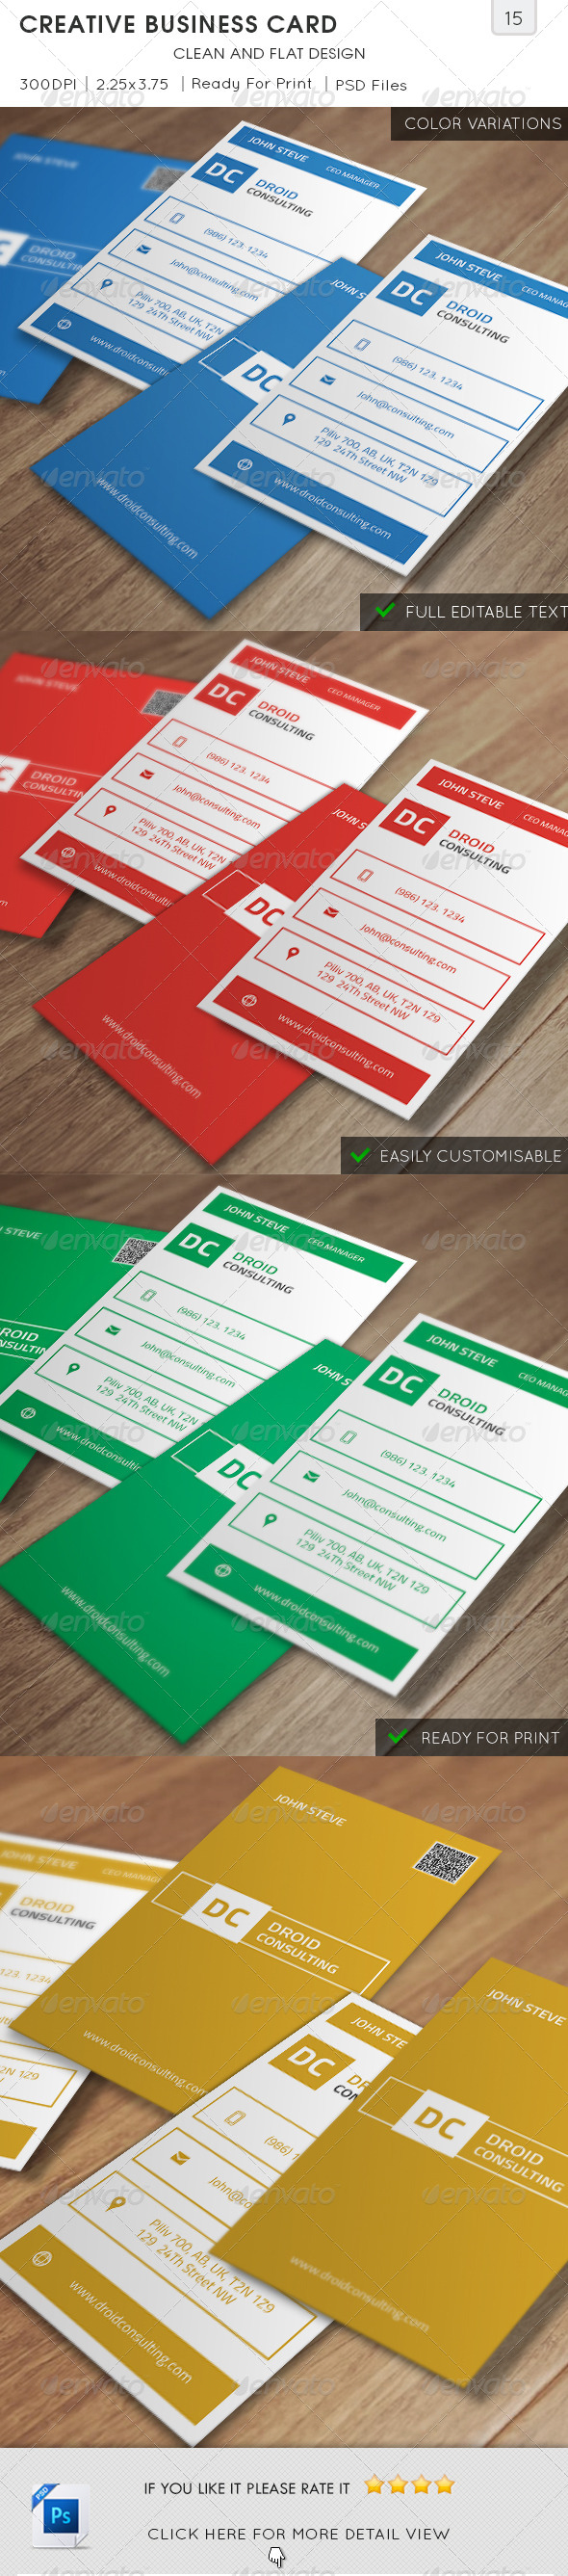 GraphicRiver Creative Business Card v15 5838631